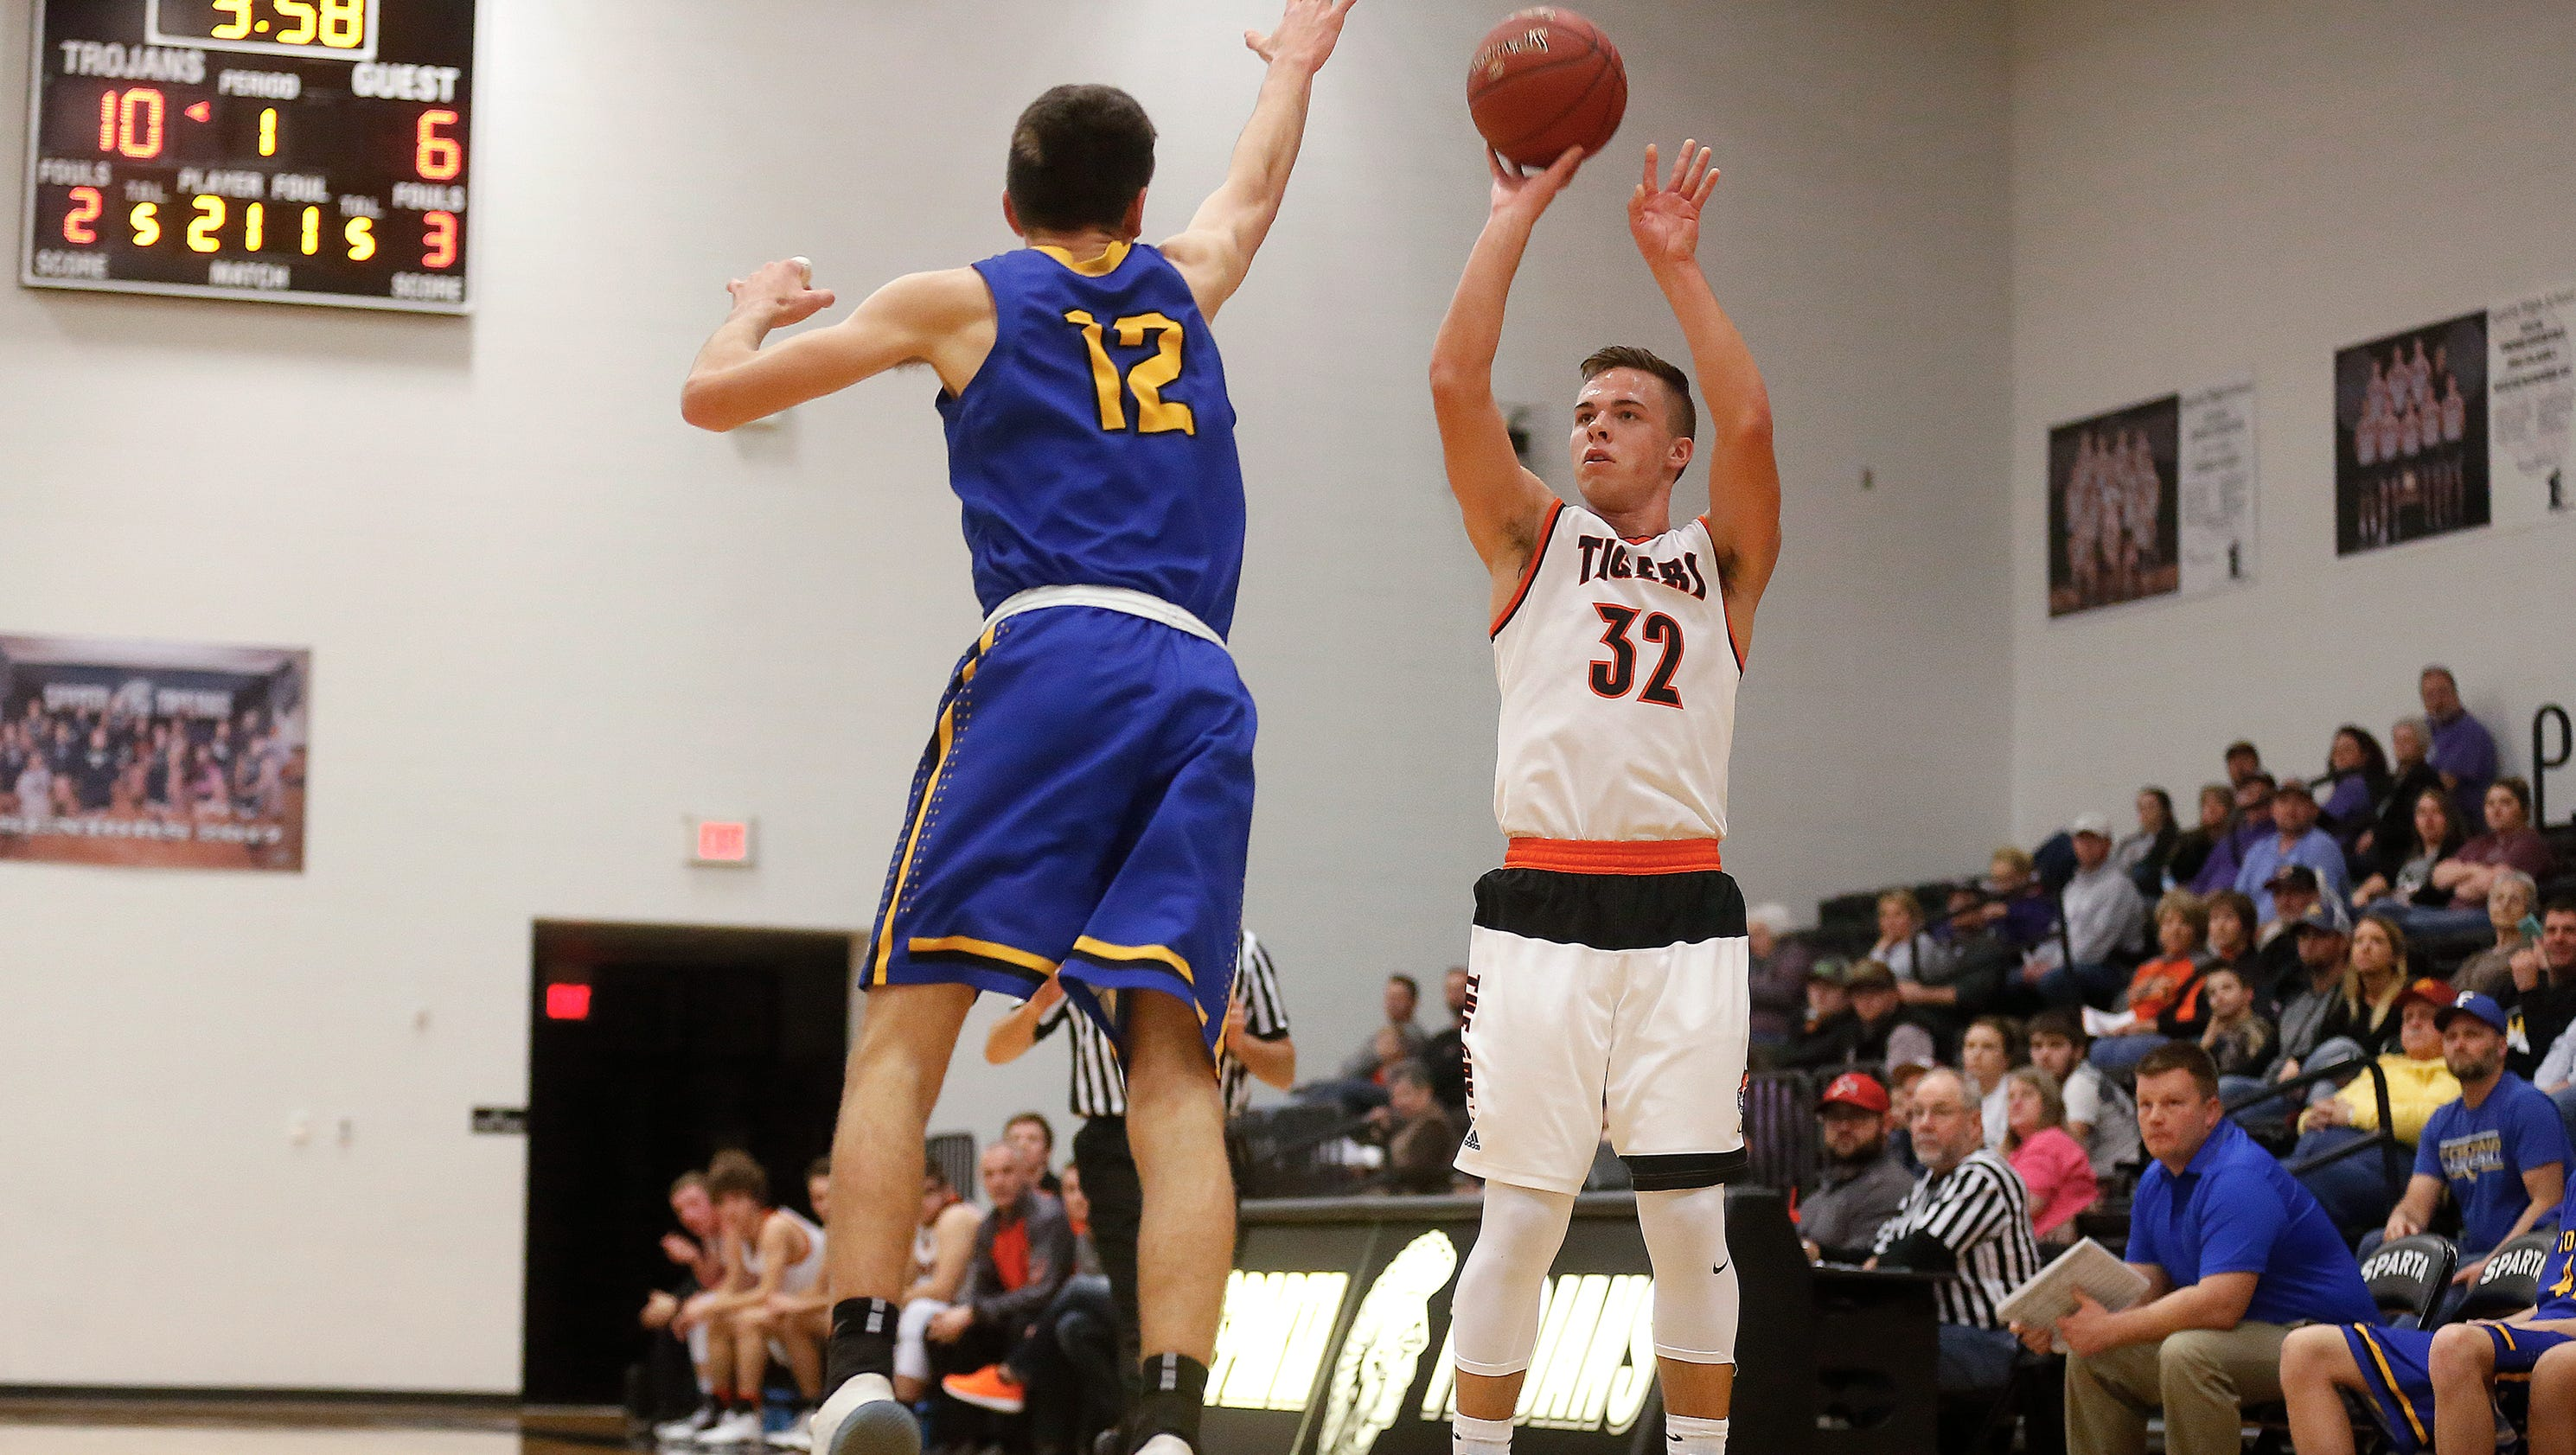 basketball high school and district championship Whitehall high school previous next zephyr athletics @zephyrathletics the off-the-court people who make the hs boys basketball a spec.